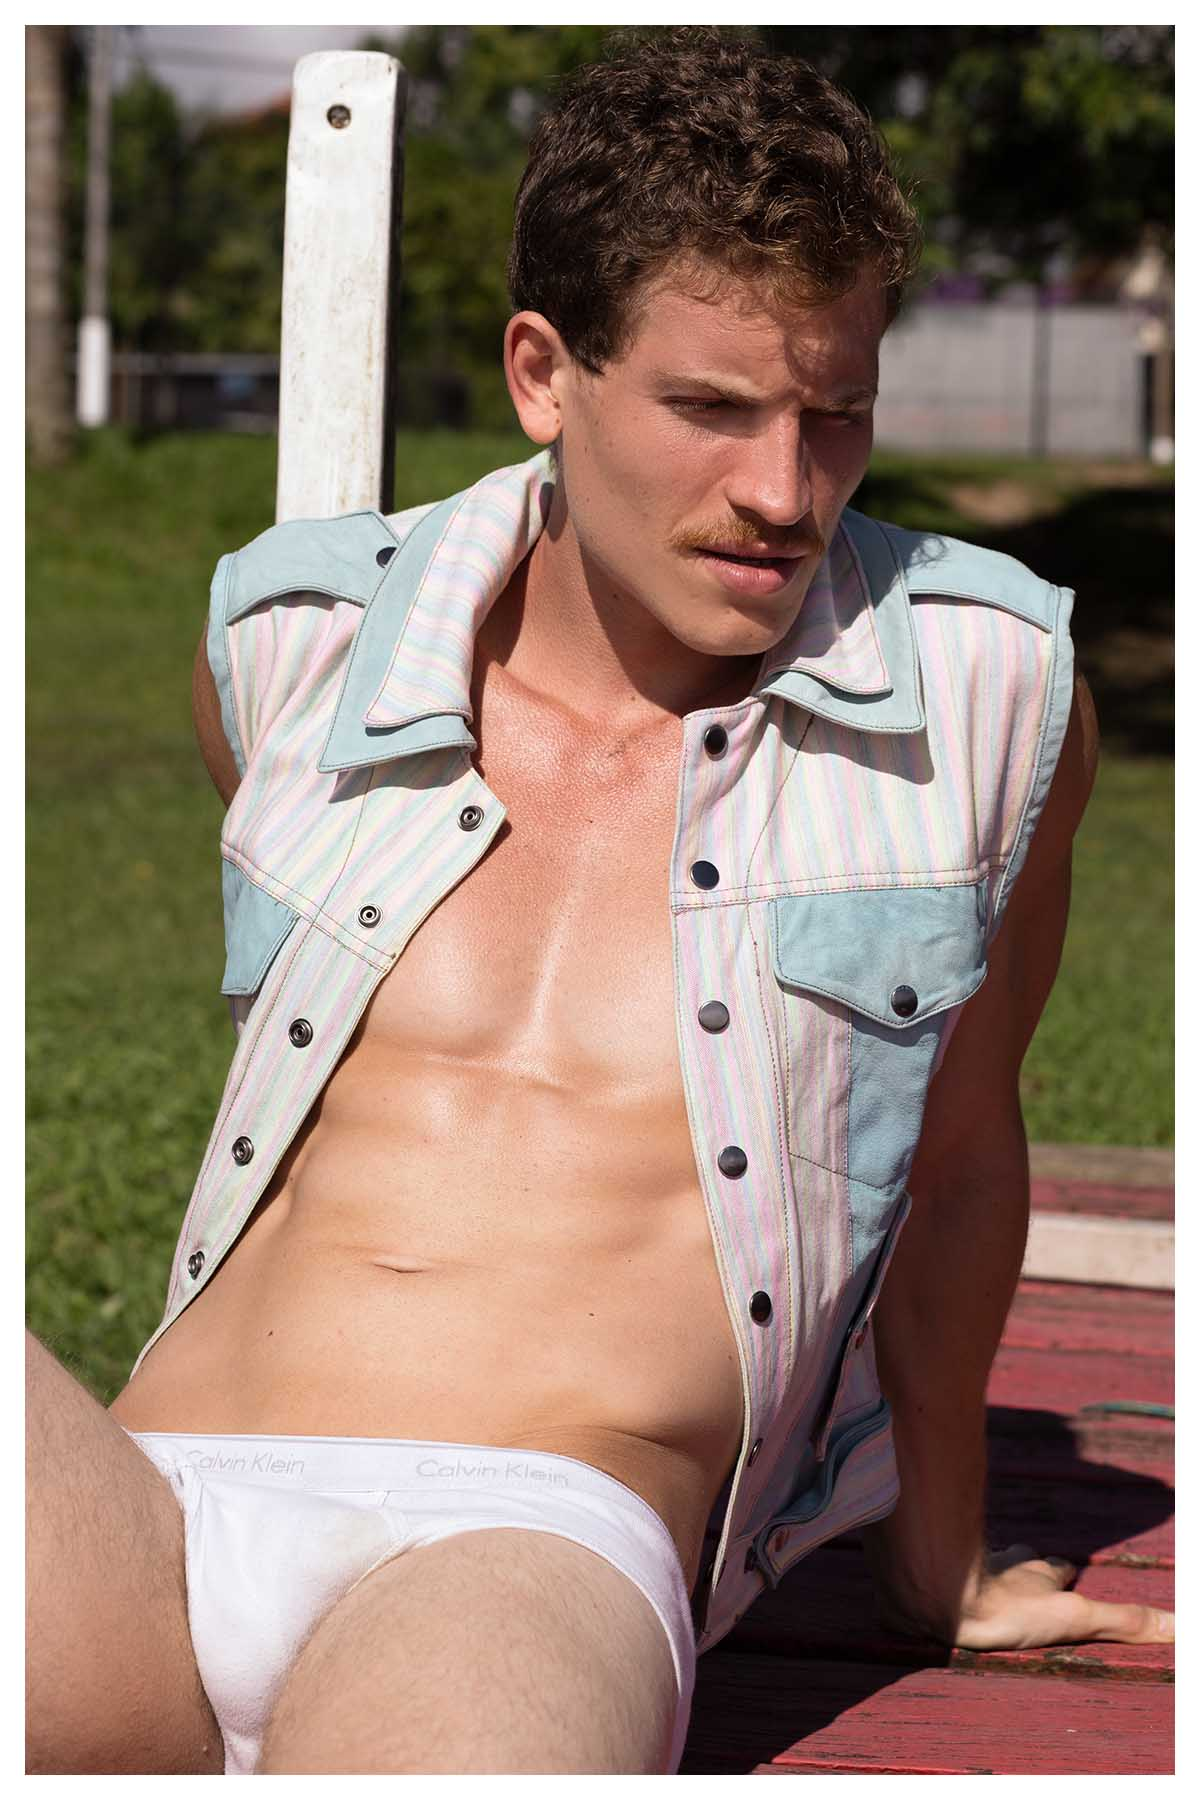 Giulio Melchiori by Anderson Silva with Victor Belchior for Brazilian Male Model